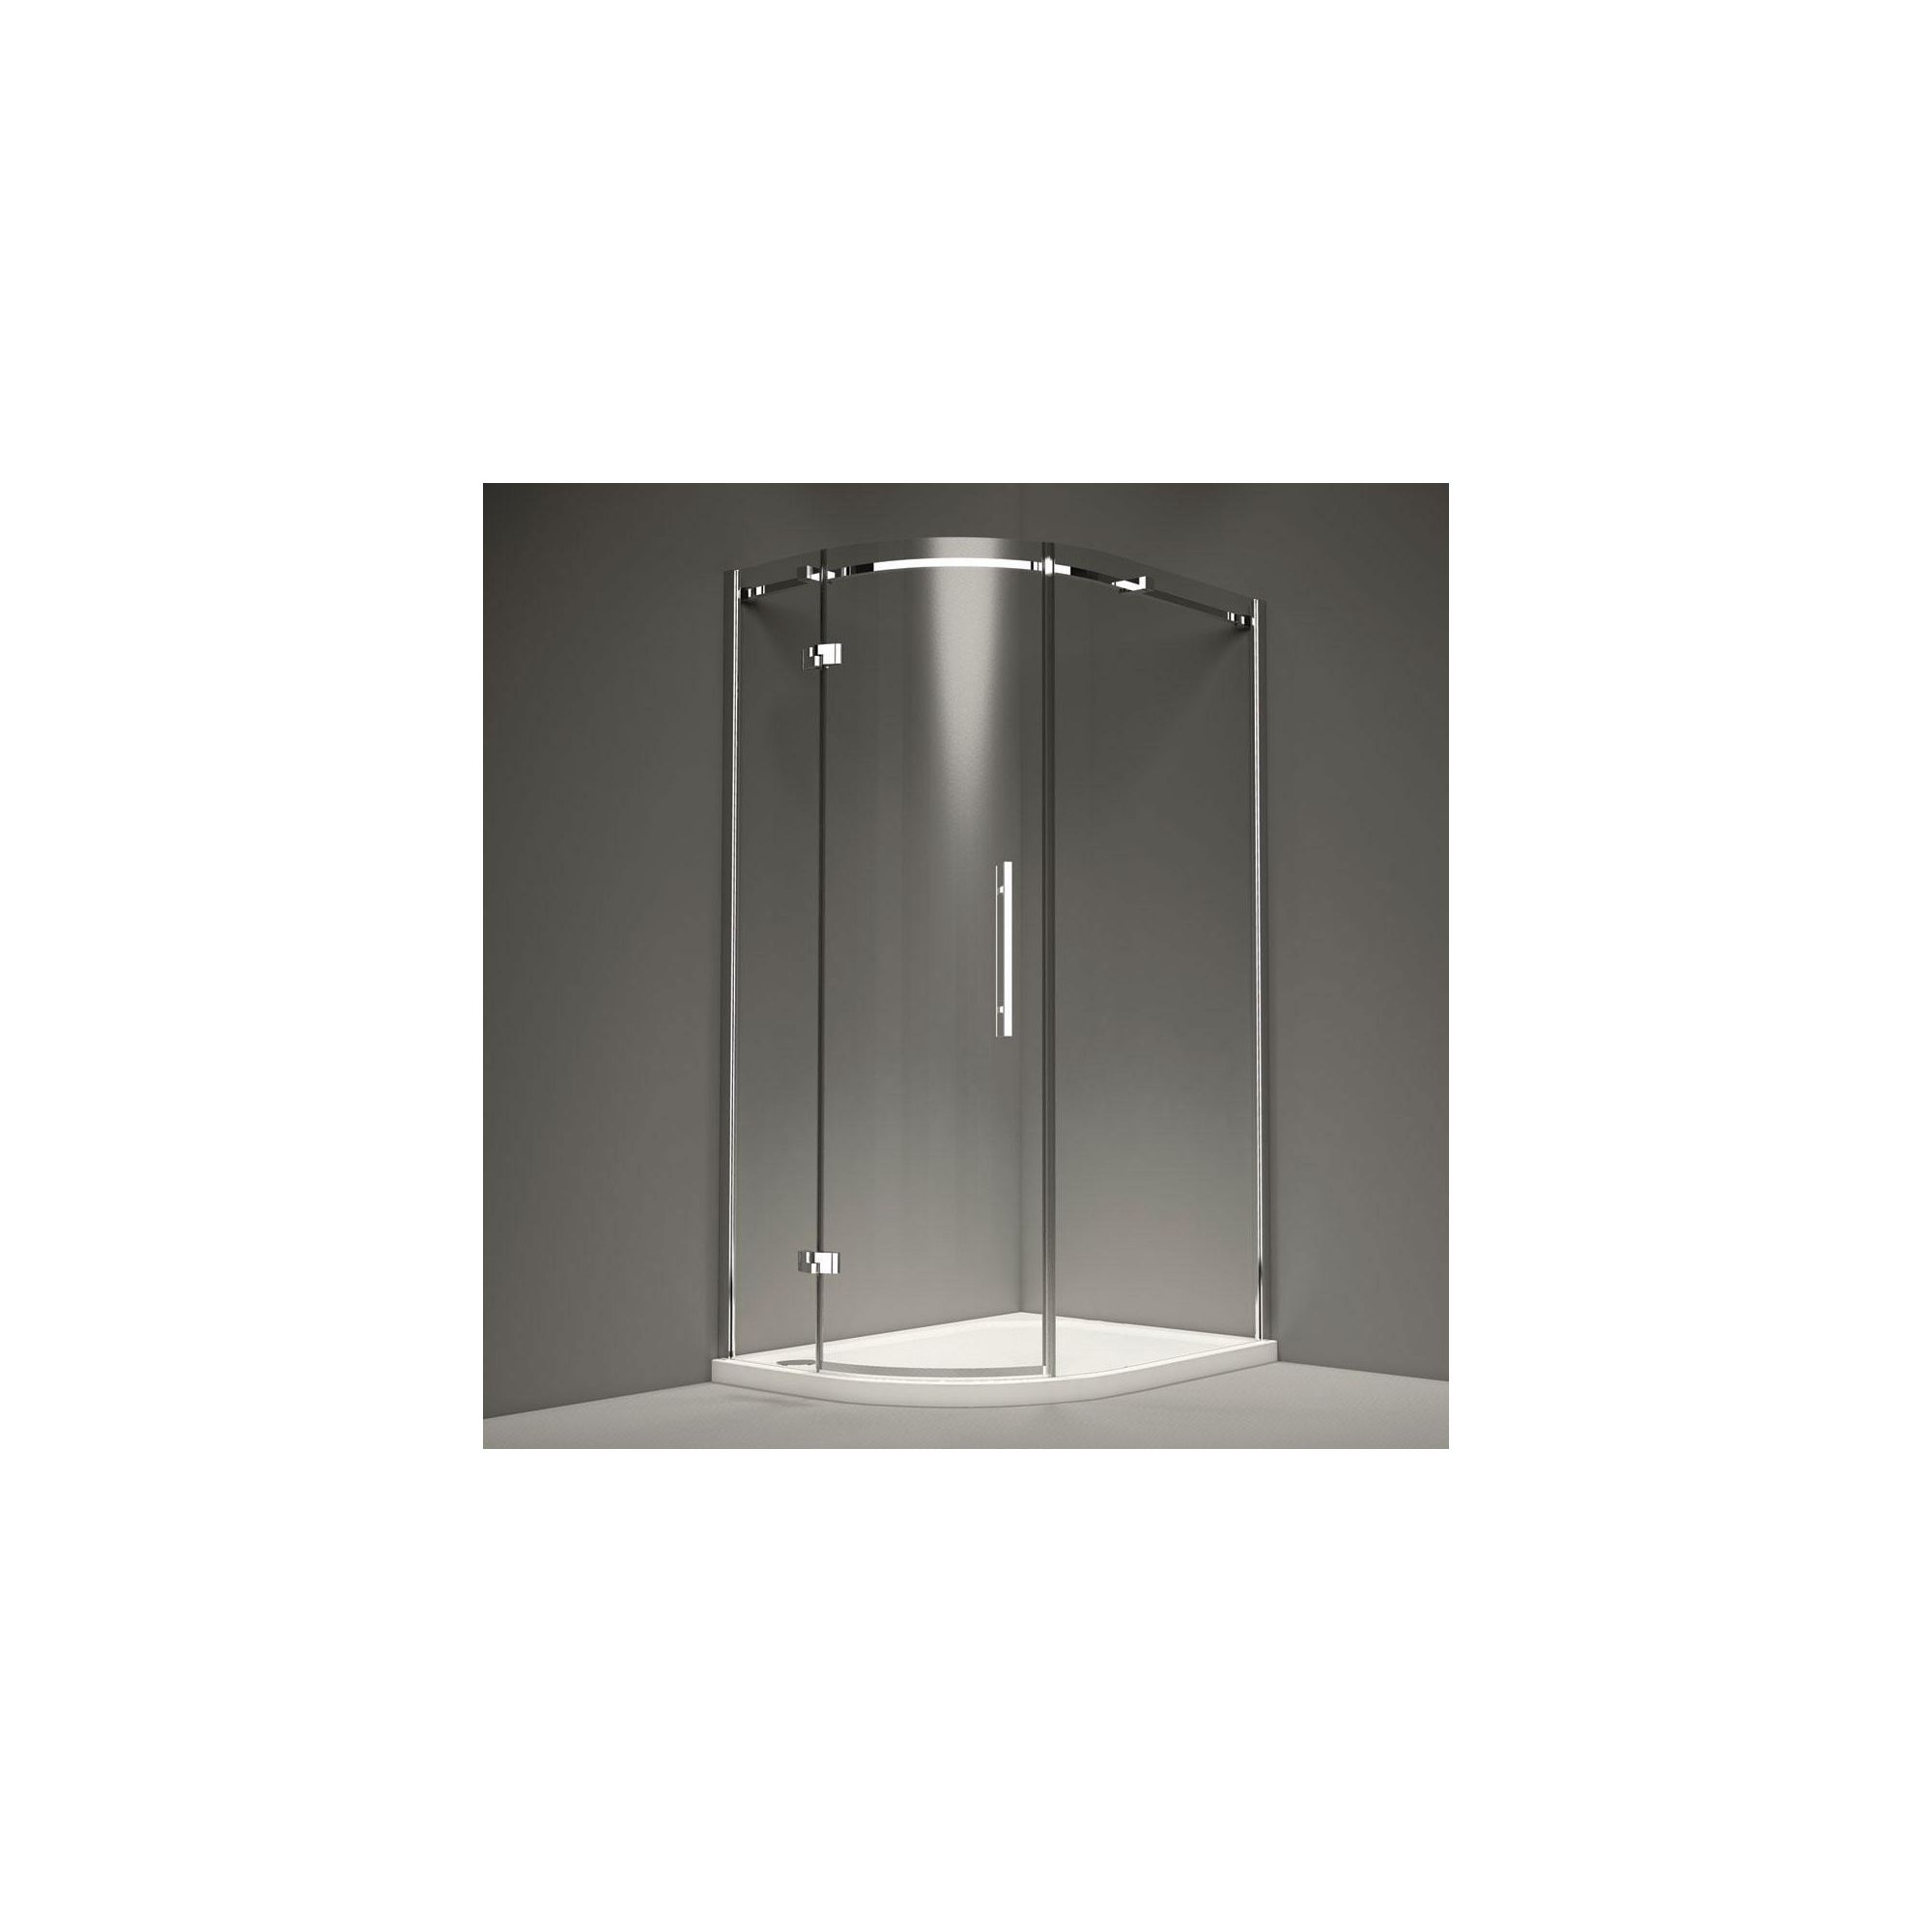 Merlyn Series 9 Single Quadrant Shower Door, 800mm x 800mm, 8mm Glass, Left Handed at Tesco Direct